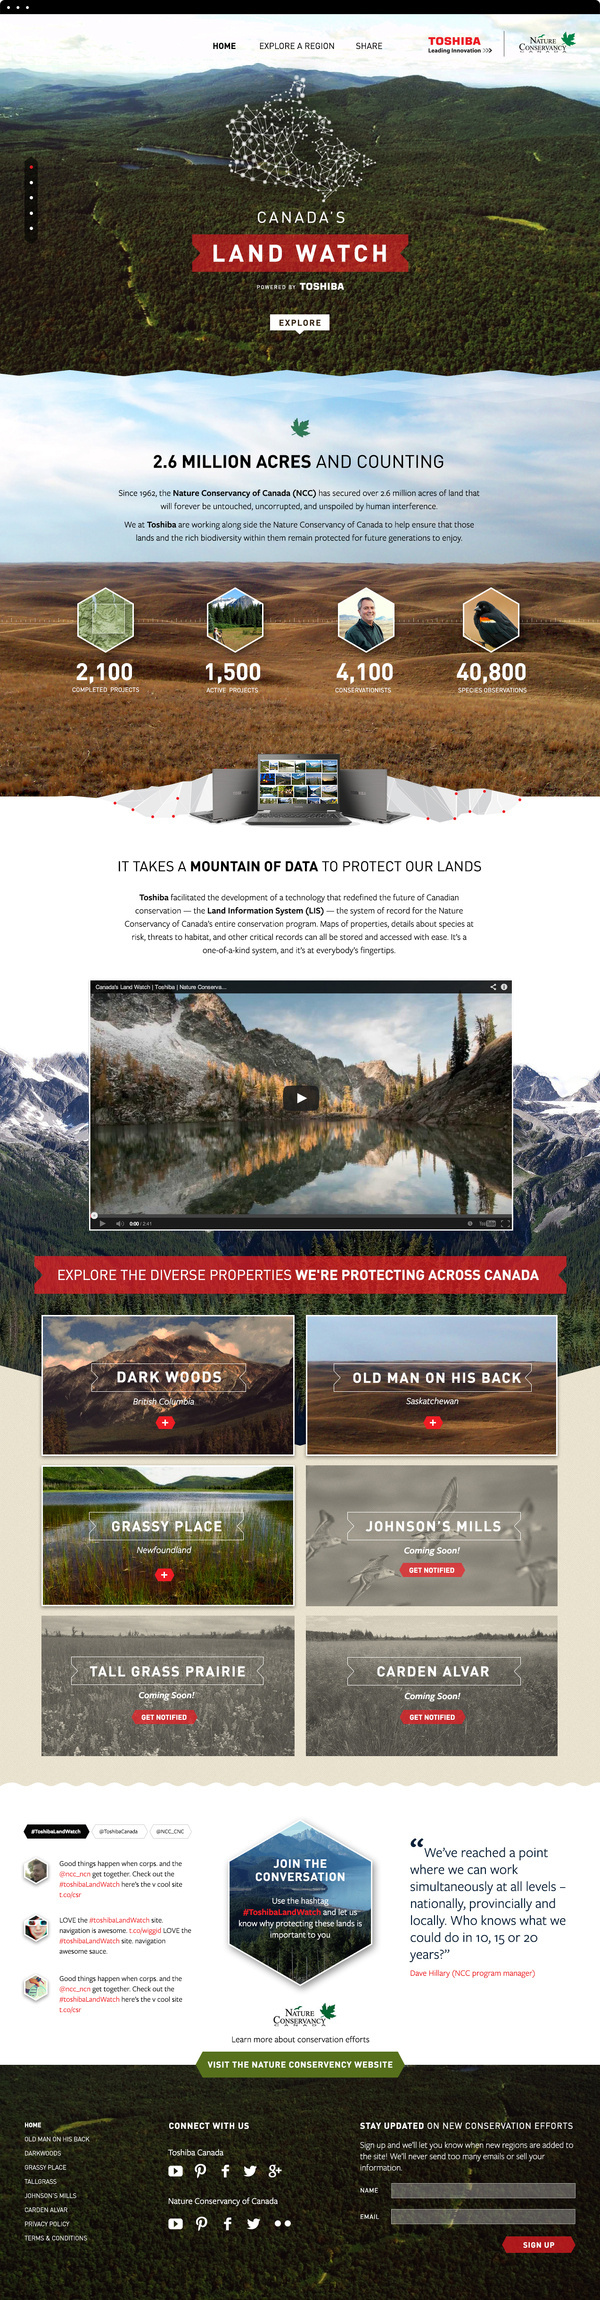 Land Watch - I love the border transitions from section to section. #website #layout #sections #panels